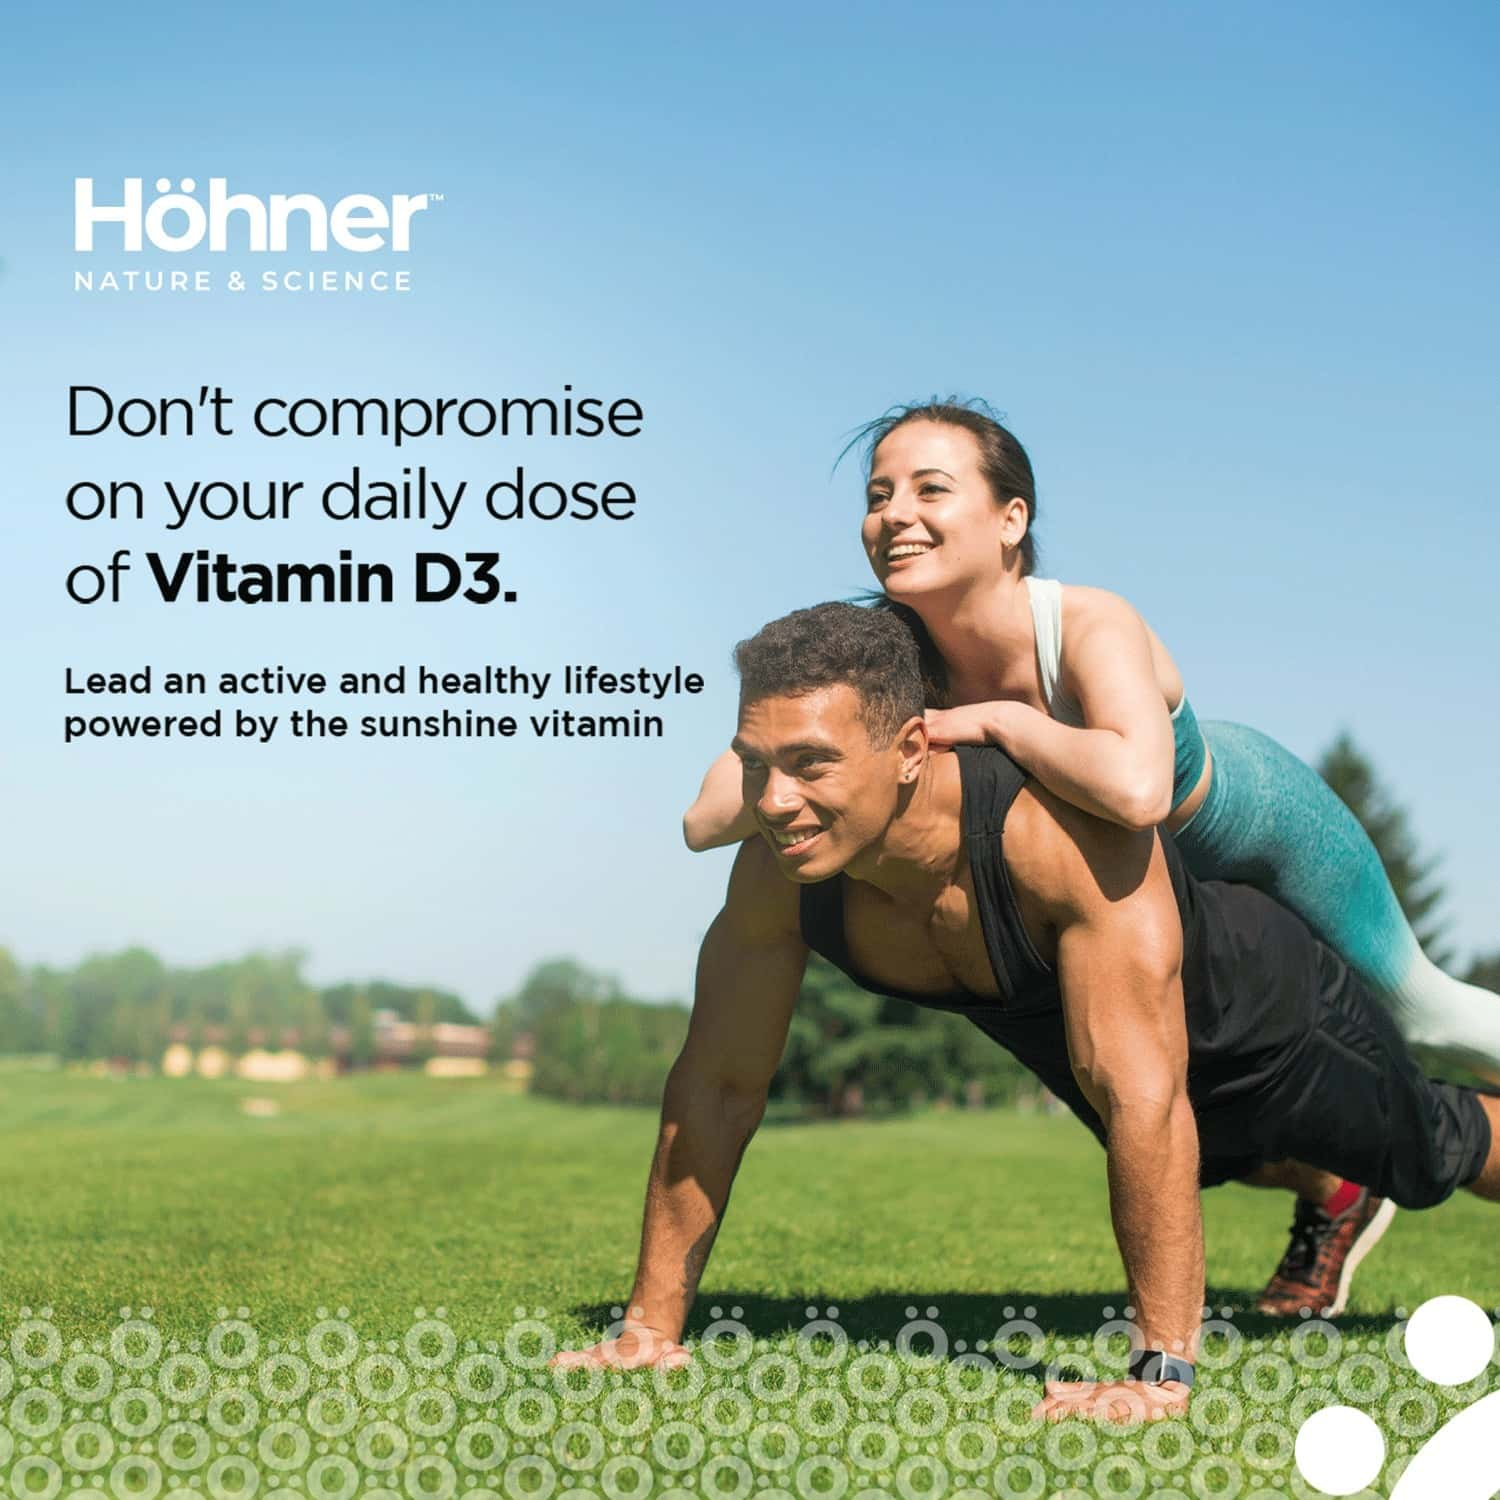 Hohner Vitamin D3 2000iu To Boost Immunity, Strong Bones And Muscles - 60 Capsule